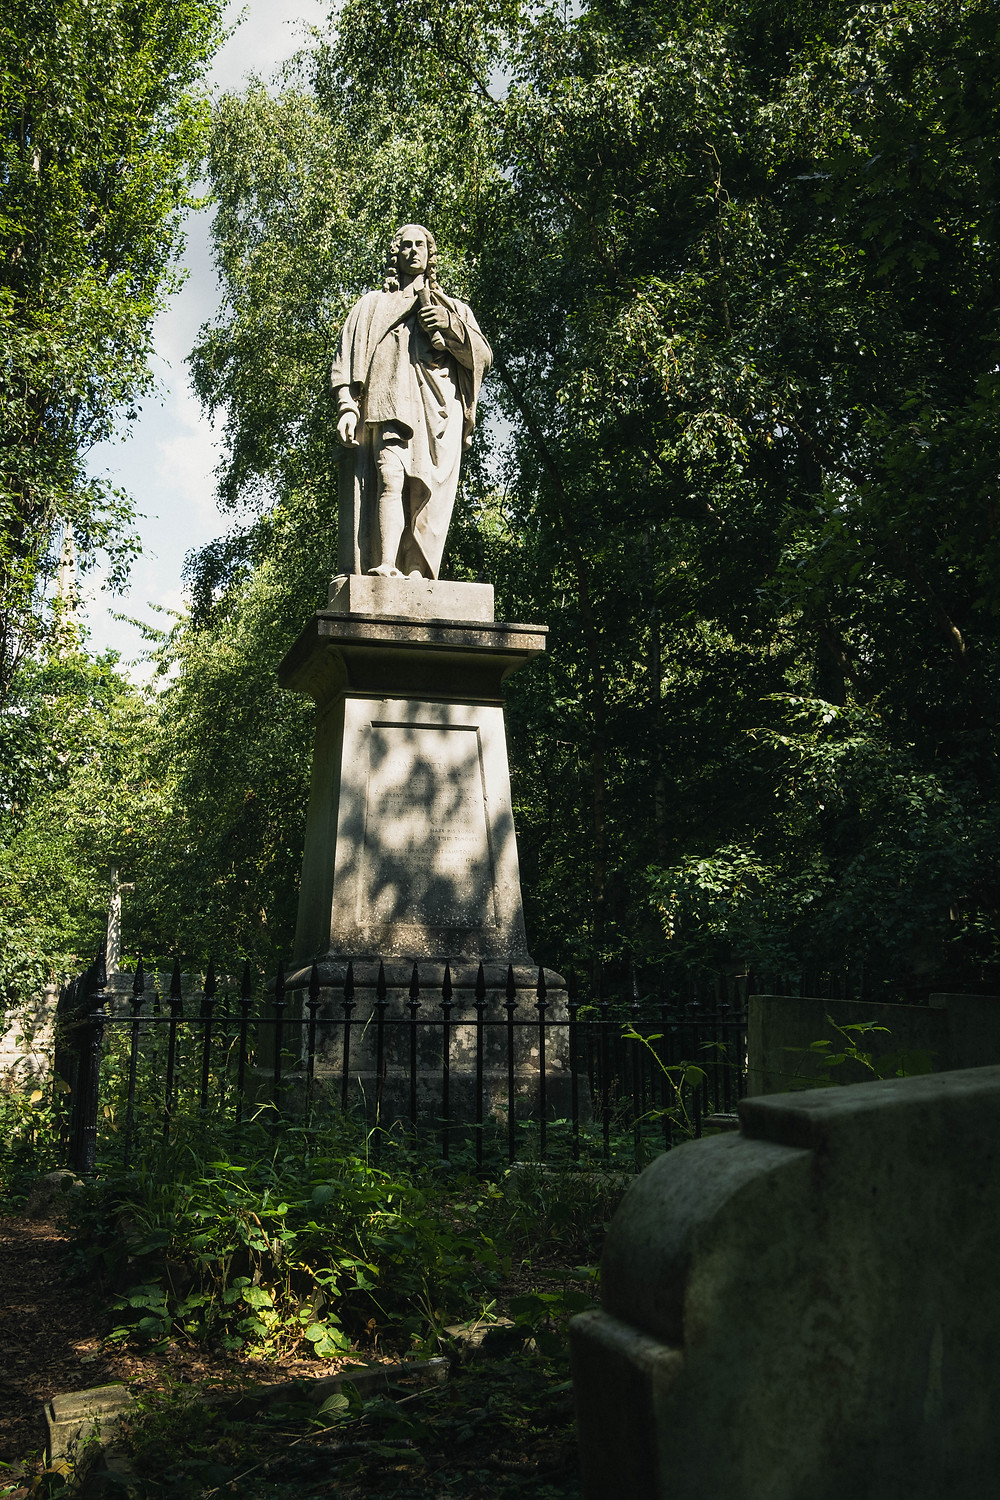 Photograph of the statute of Isaac Watts in Abney Park